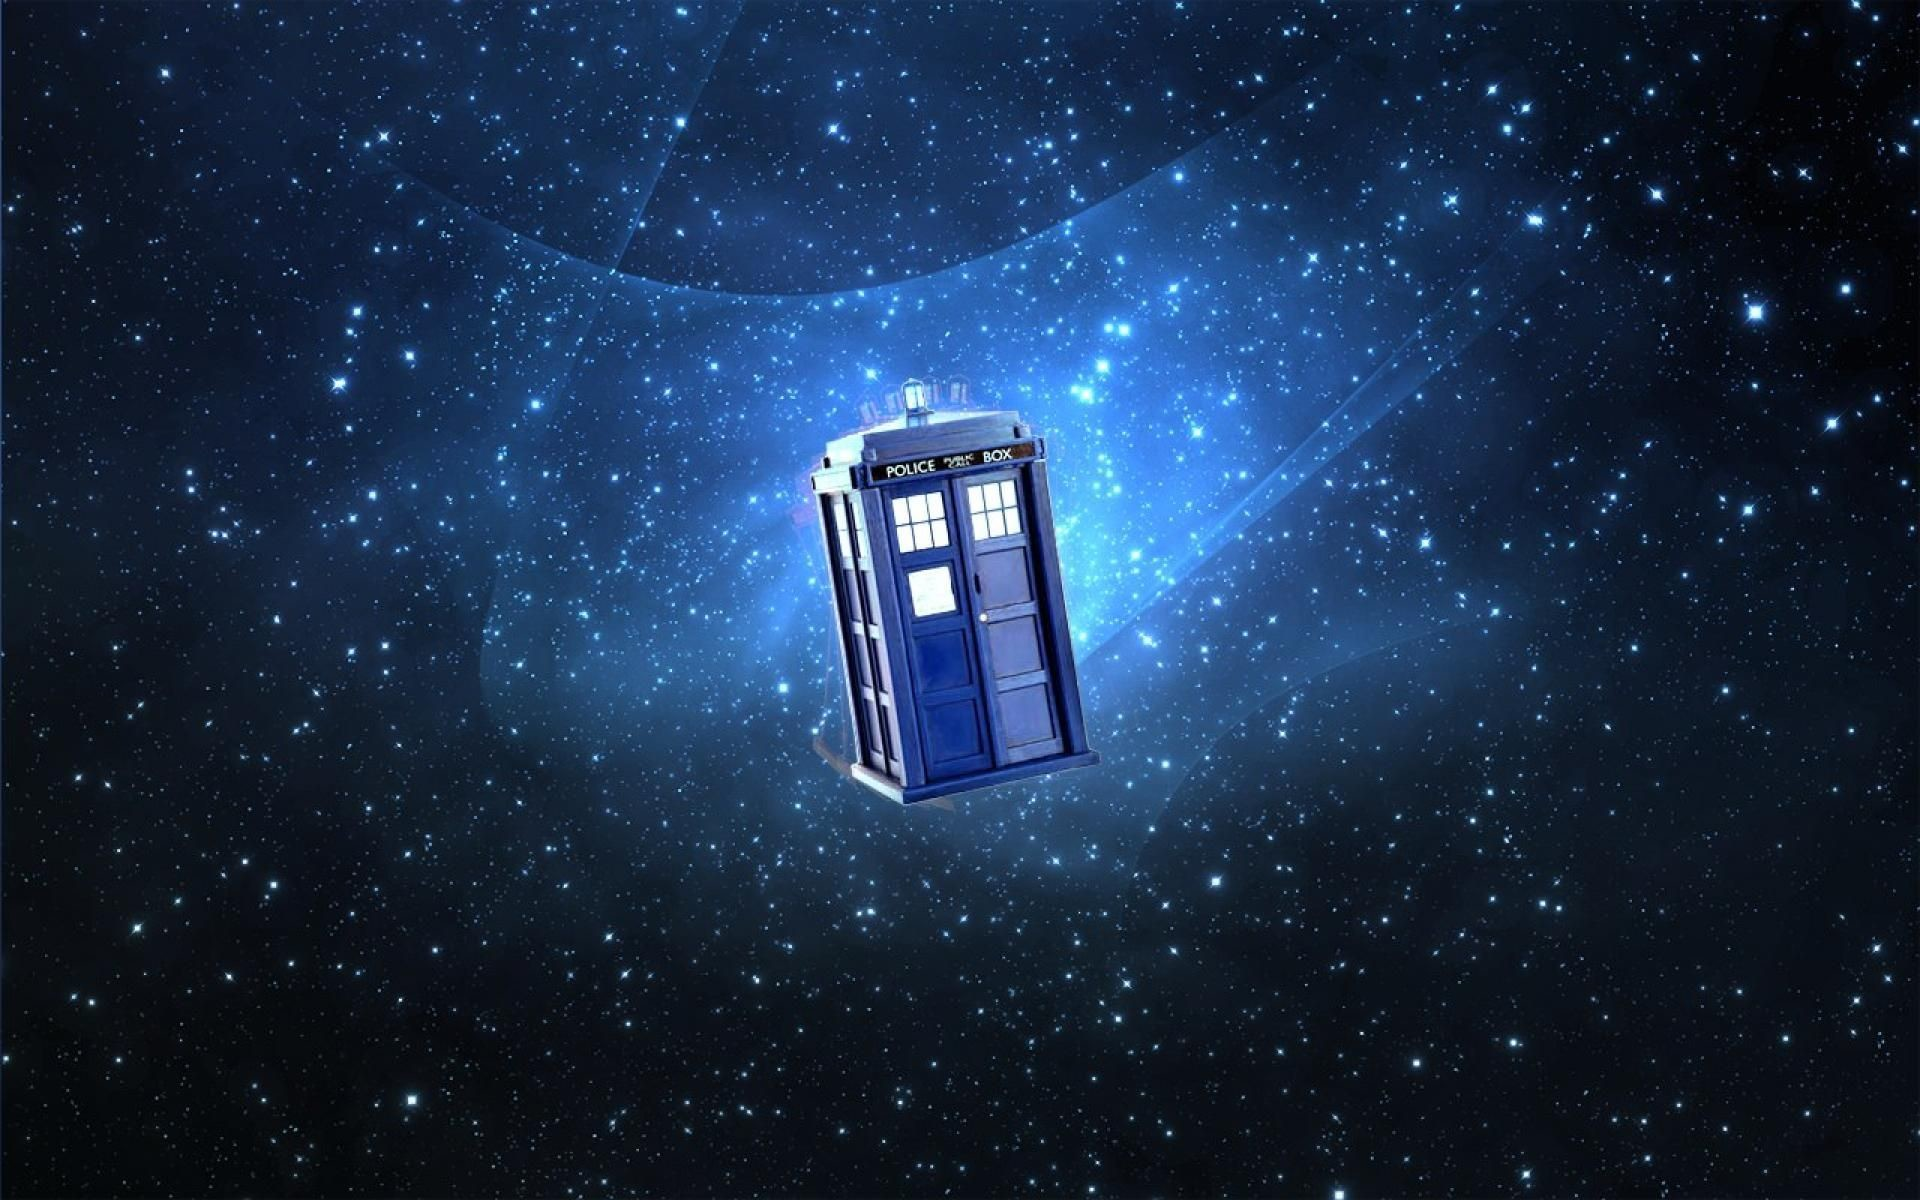 Res: 1920x1200, dr who tardis wallpaper for ipad 4 - Bing Images